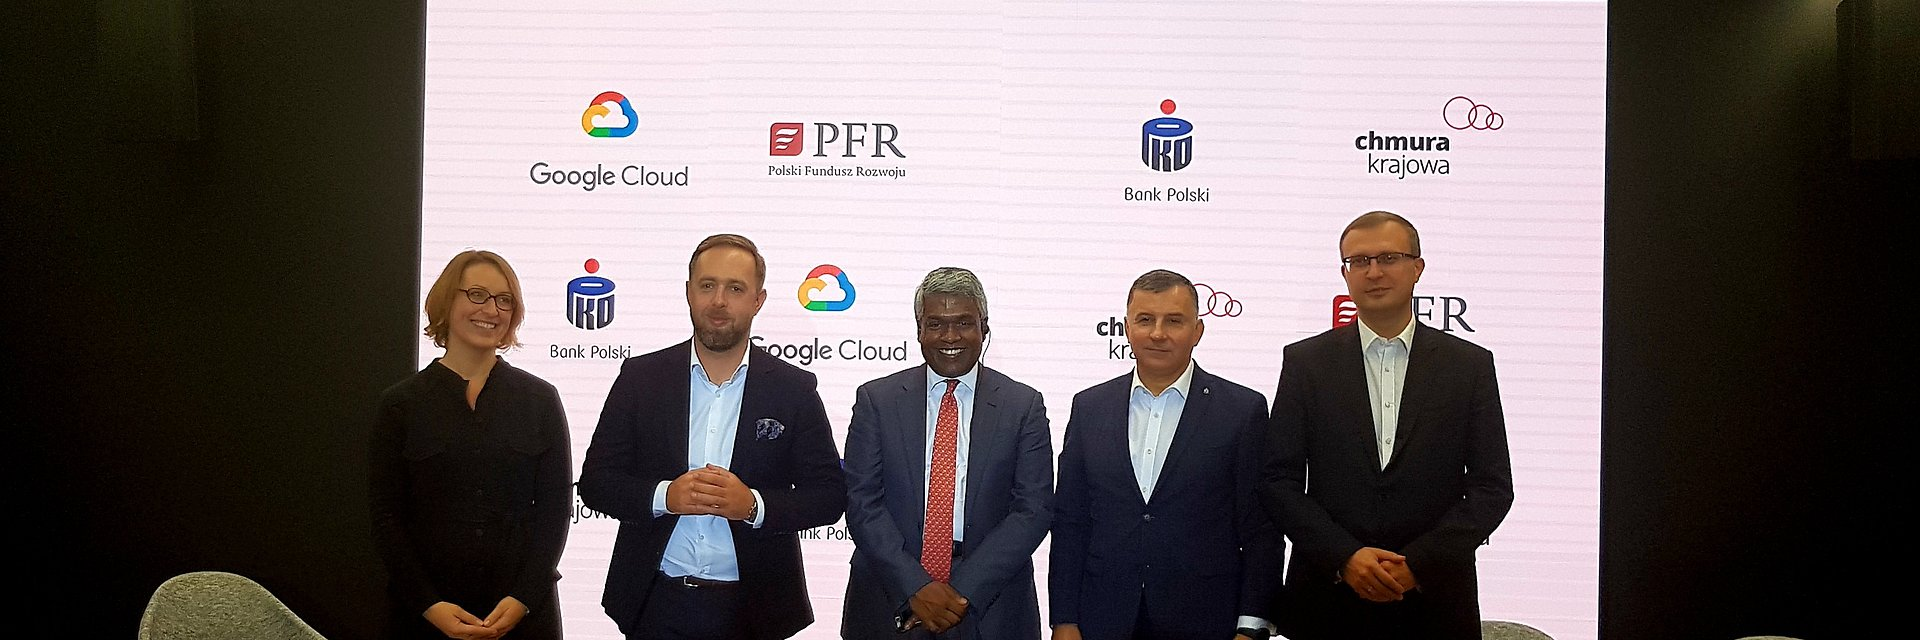 Strategic partnership between Operator Chmury Krajowej and Google for digitization of the Polish economy